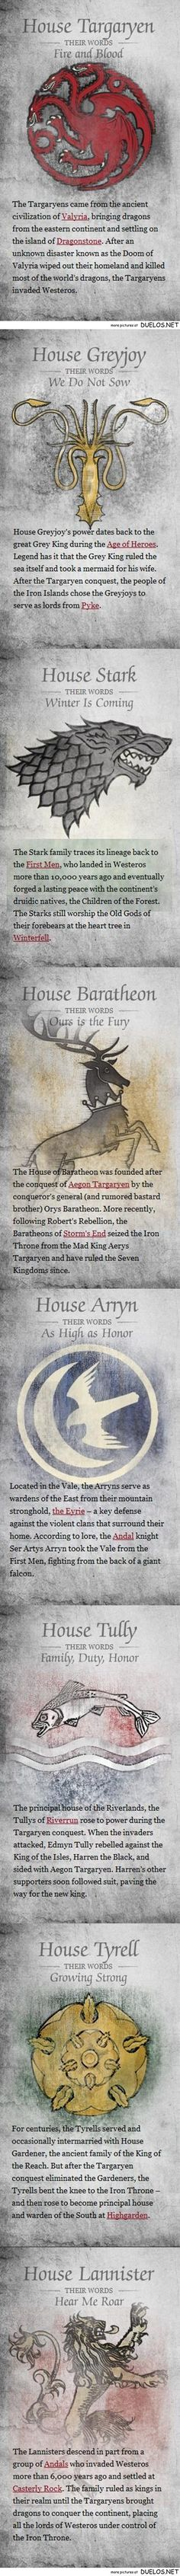 History of houses of Game of Thrones - we post these as posters around house! OR we have a station for each major house with food and drink they would have!